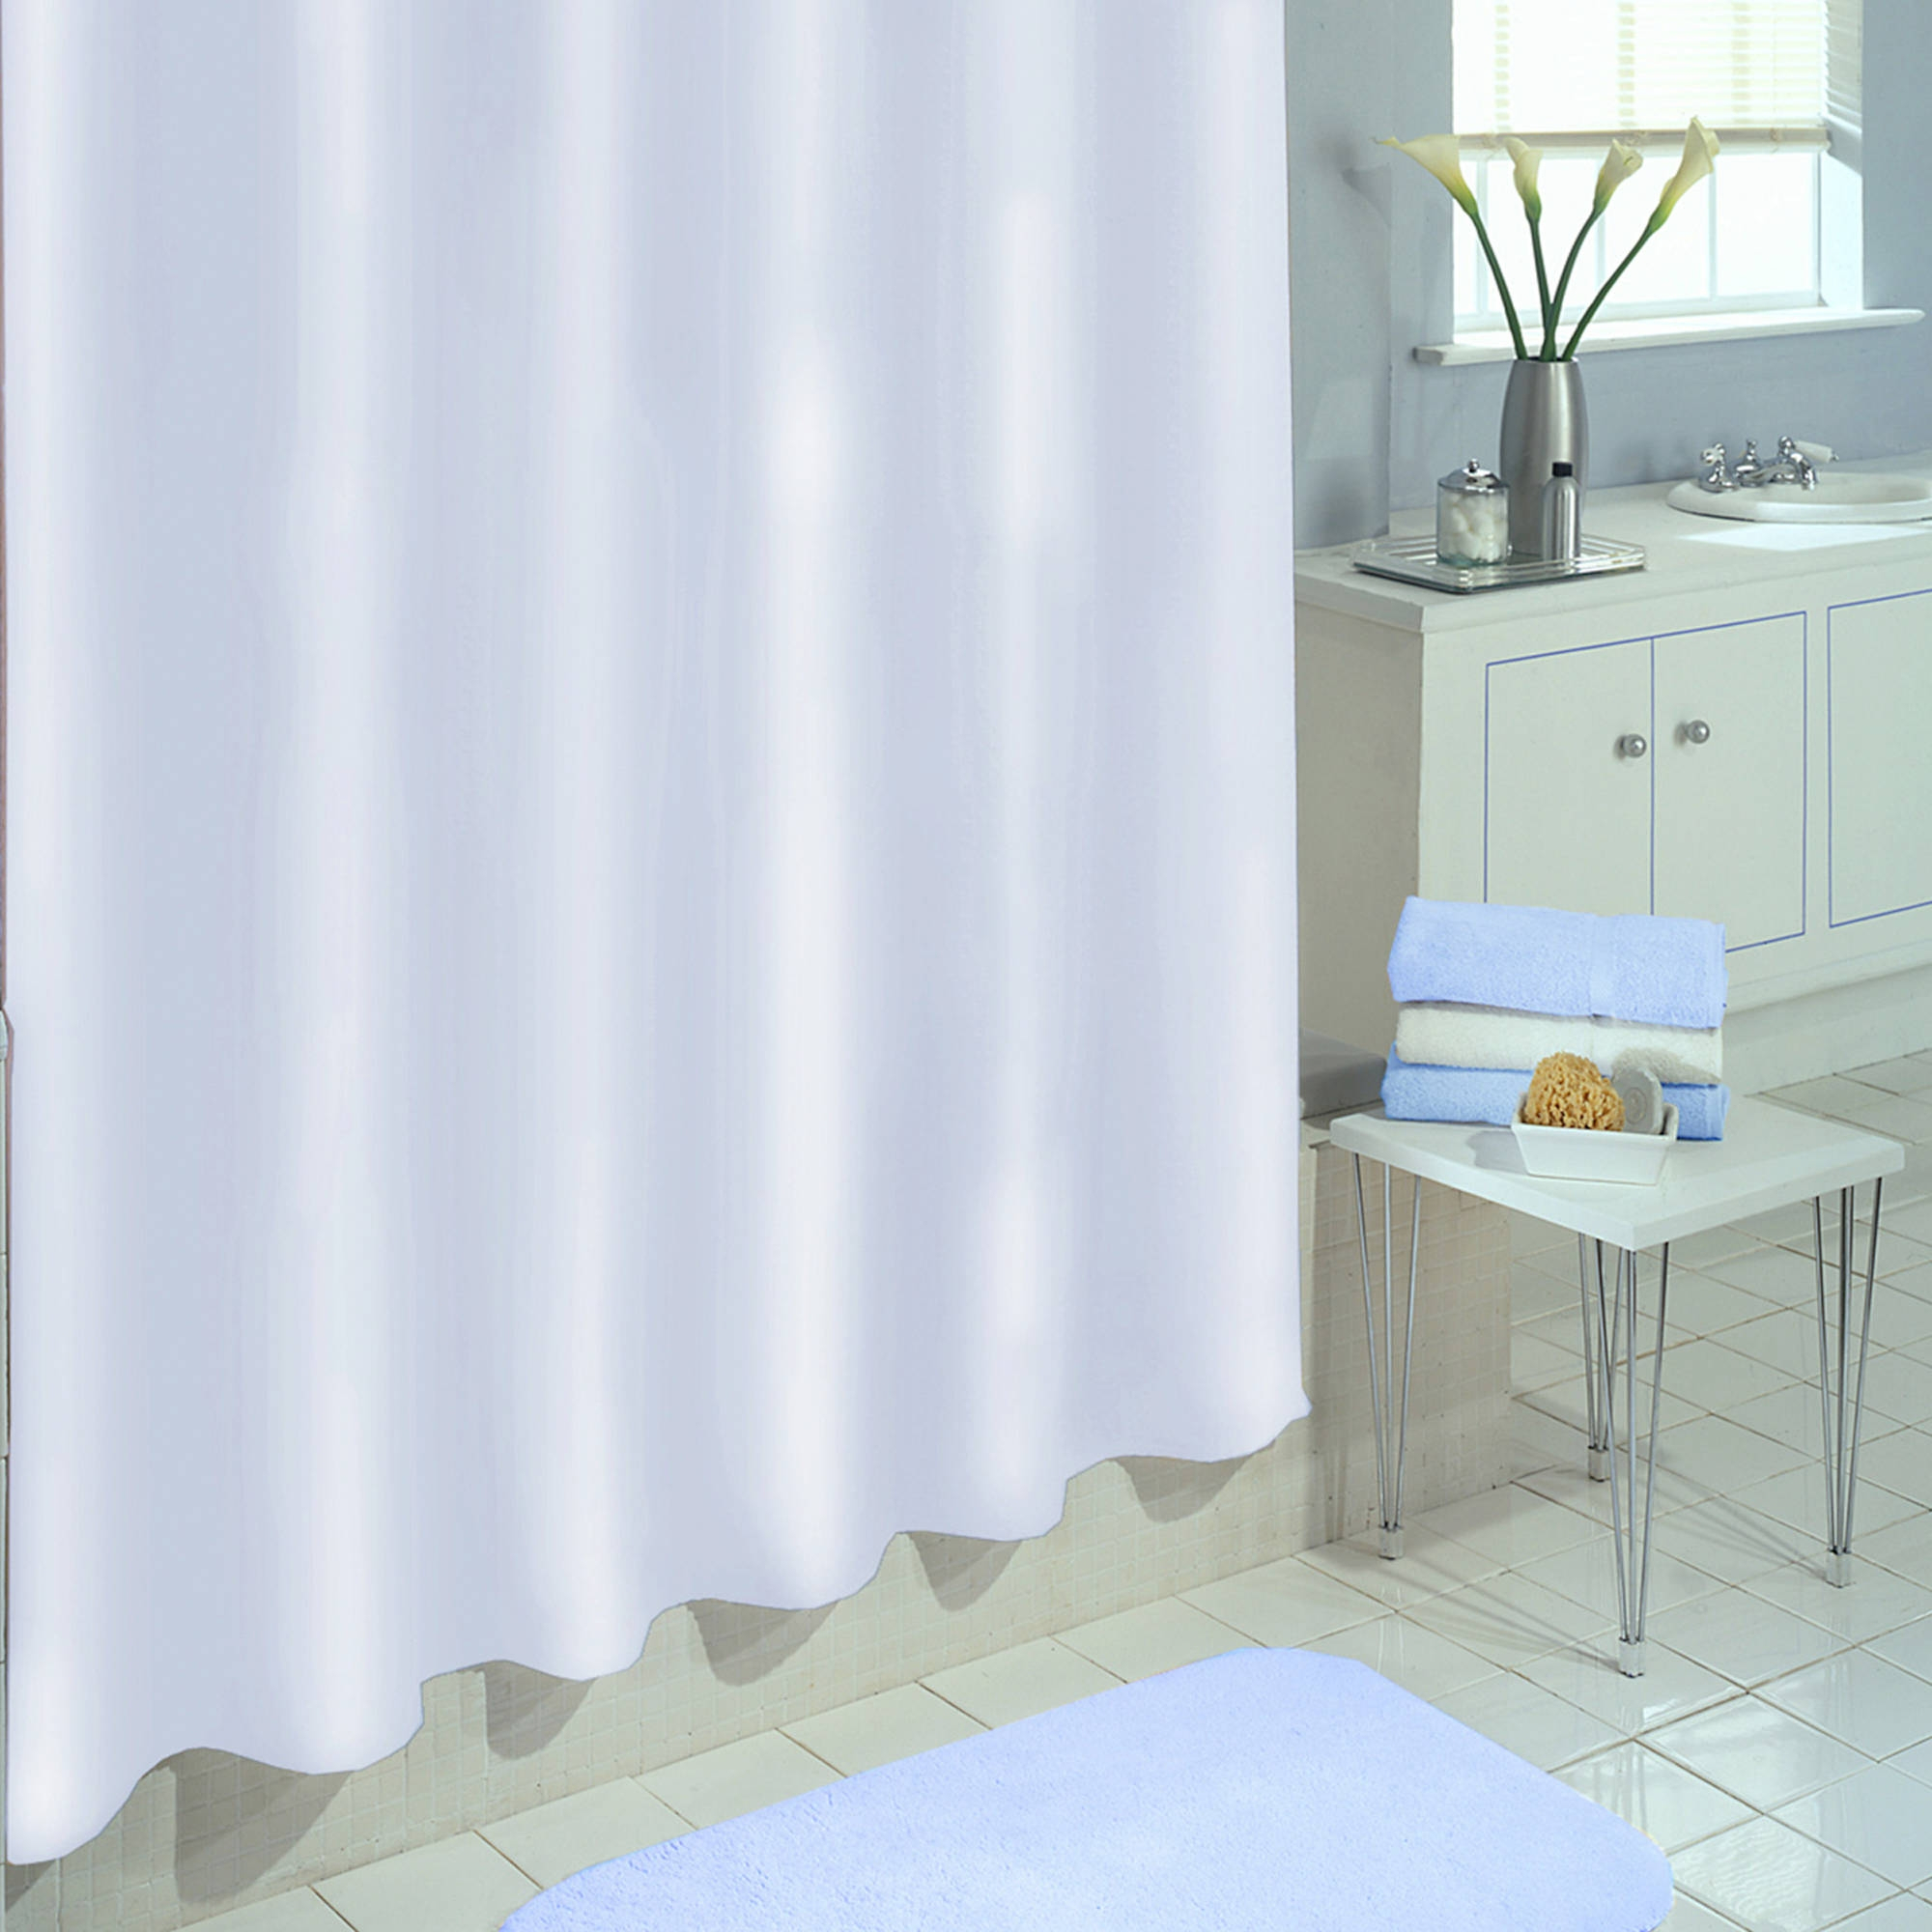 Best Shower Curtain Liner With Magnets Shower Curtain Design regarding dimensions 2000 X 2000